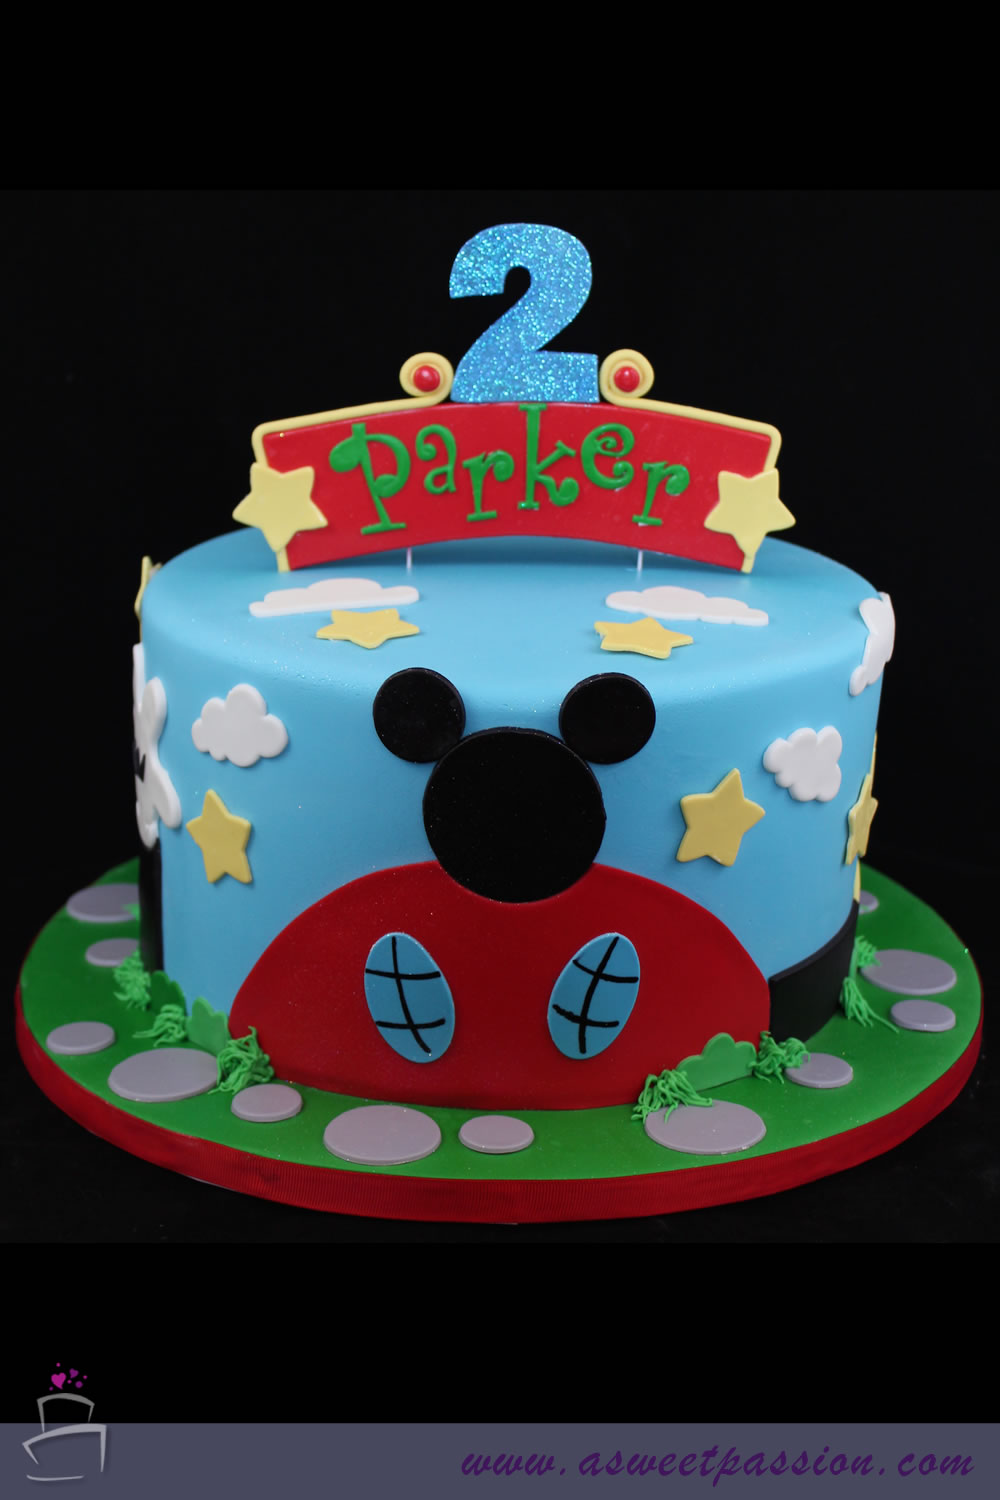 Enjoyable Mickey Mouse Clubhouse Cake Sweet Passion Cakery Funny Birthday Cards Online Overcheapnameinfo